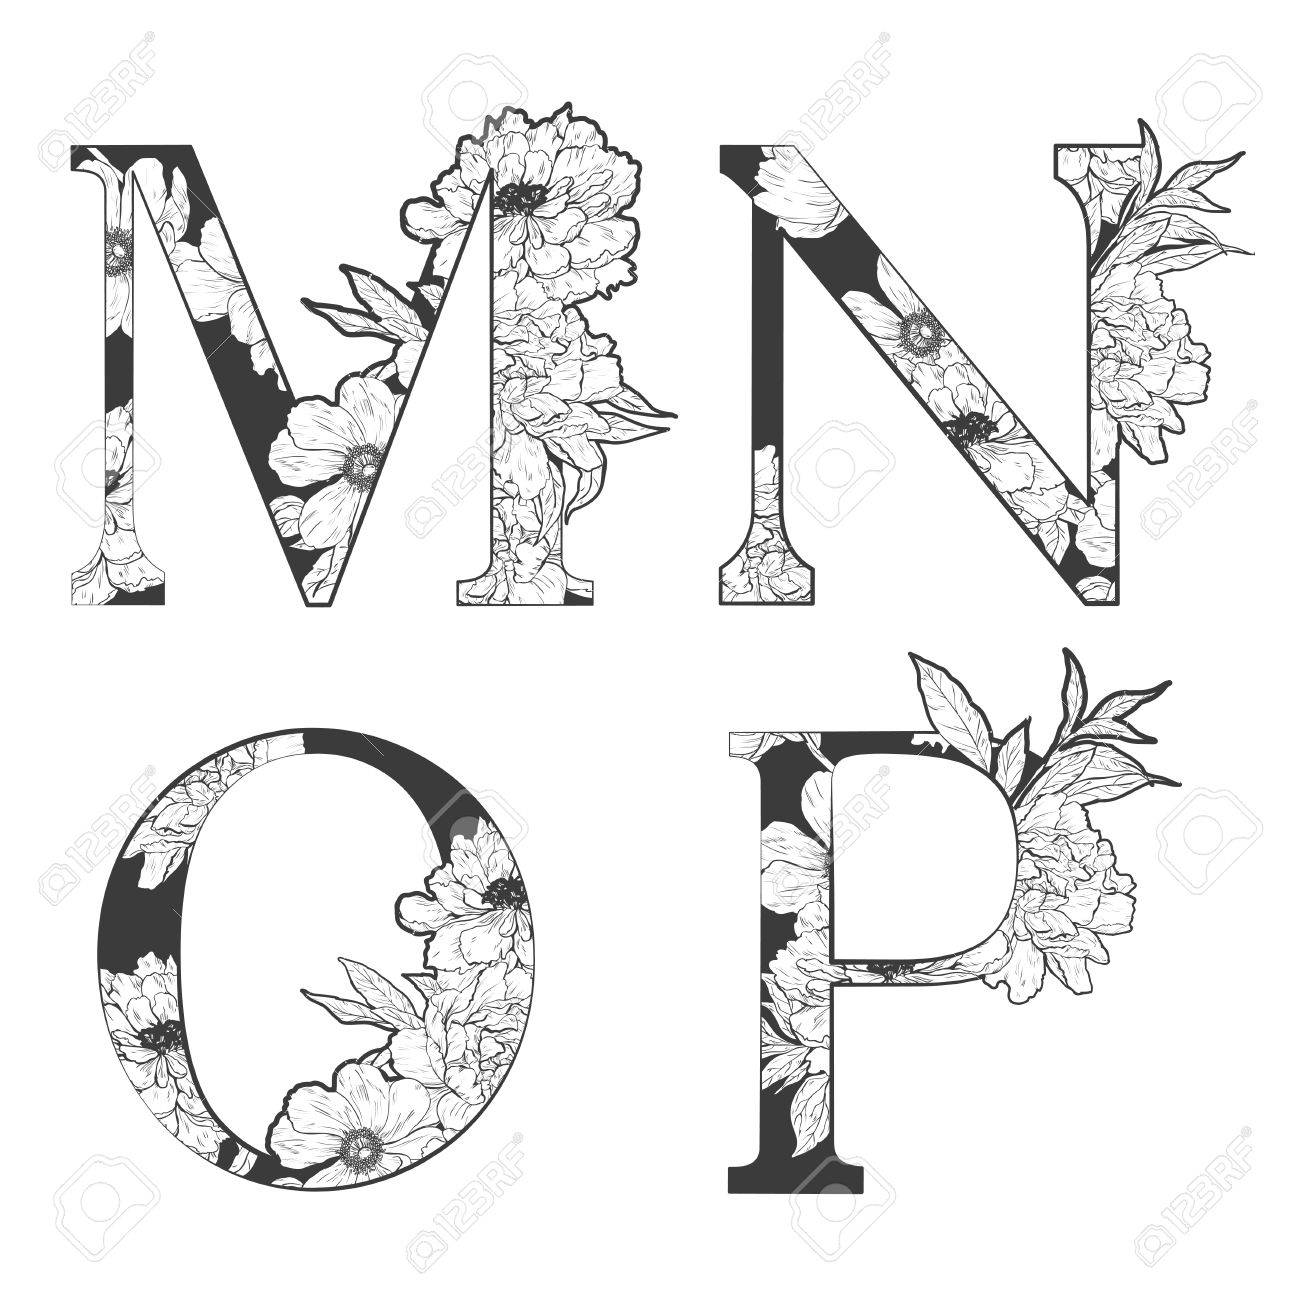 flower alphabet. Tattoo art, coloring books. Isolated on white background. Check my portfolio for other letters. - 52782998